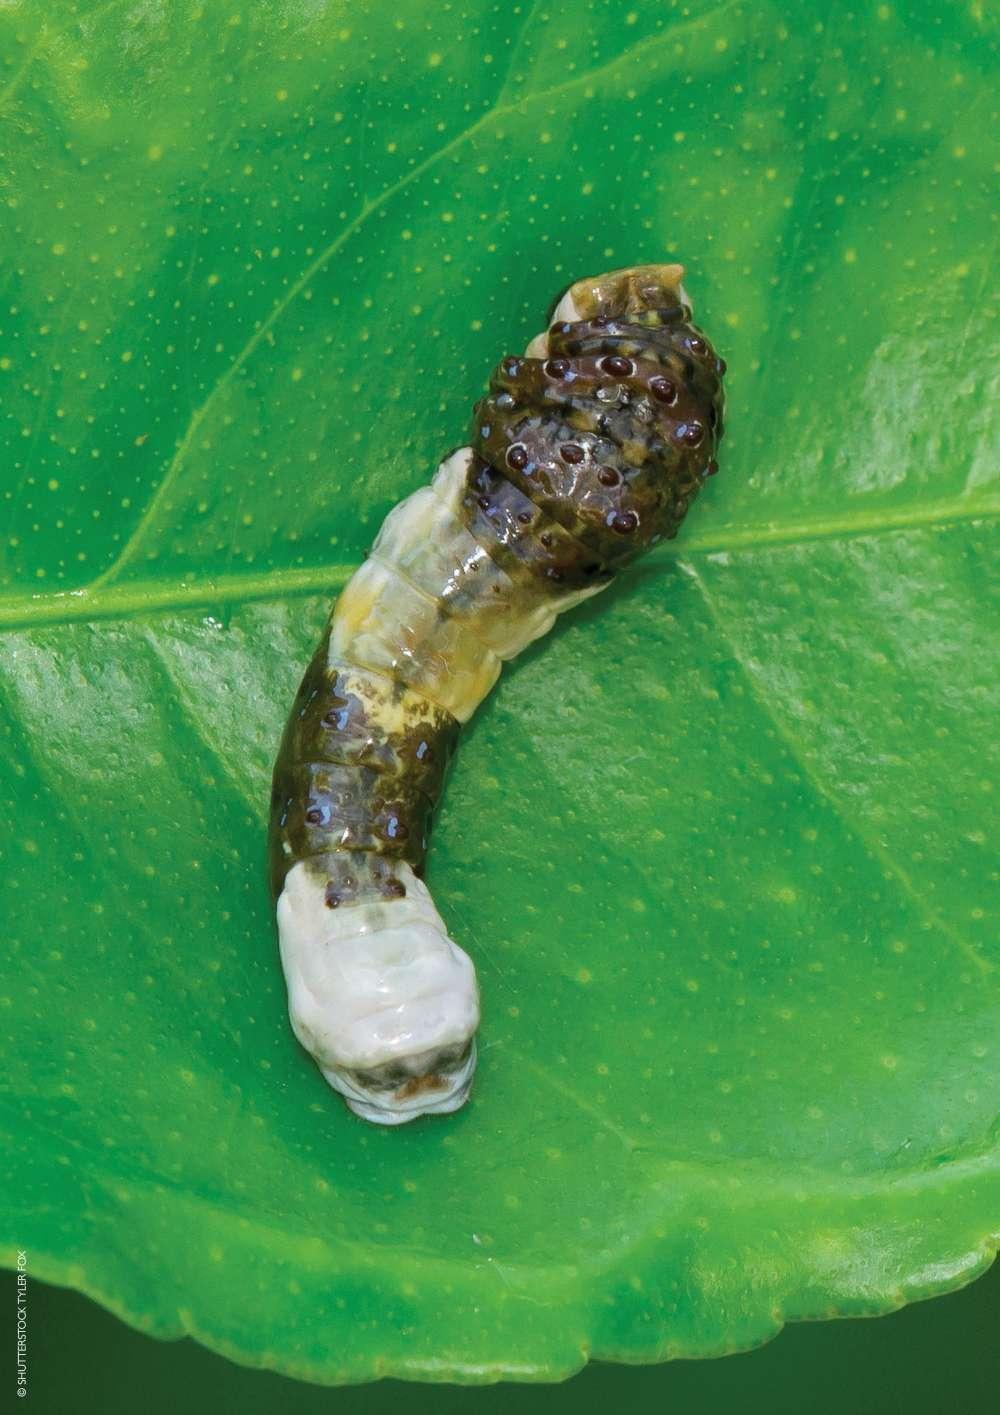 Bird poo caterpillar